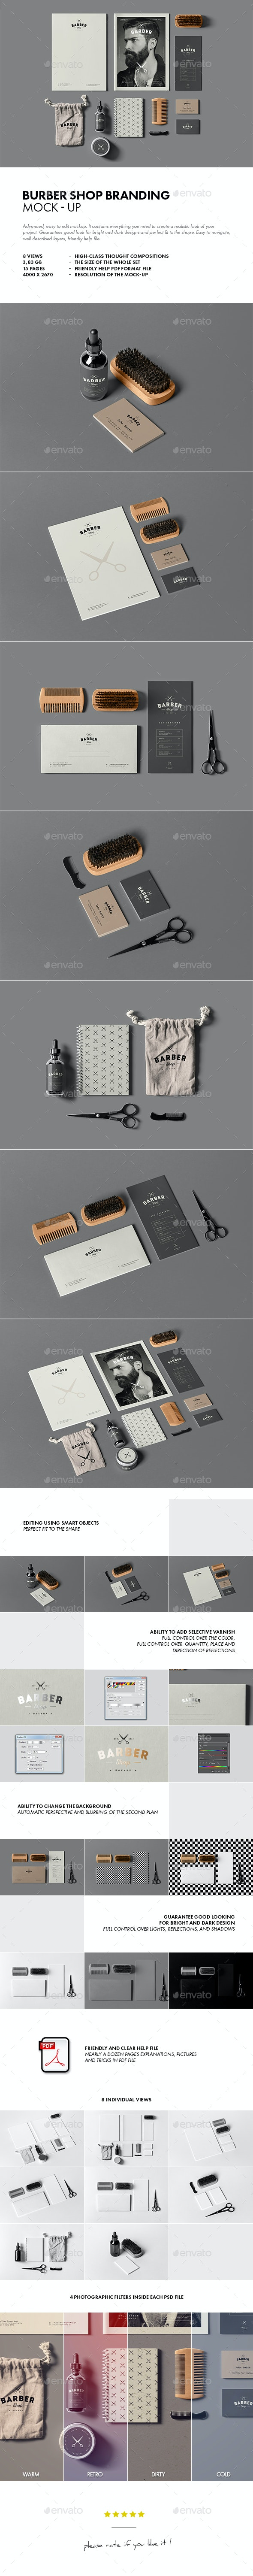 Barber Shop Branding Mock-up - Stationery Print